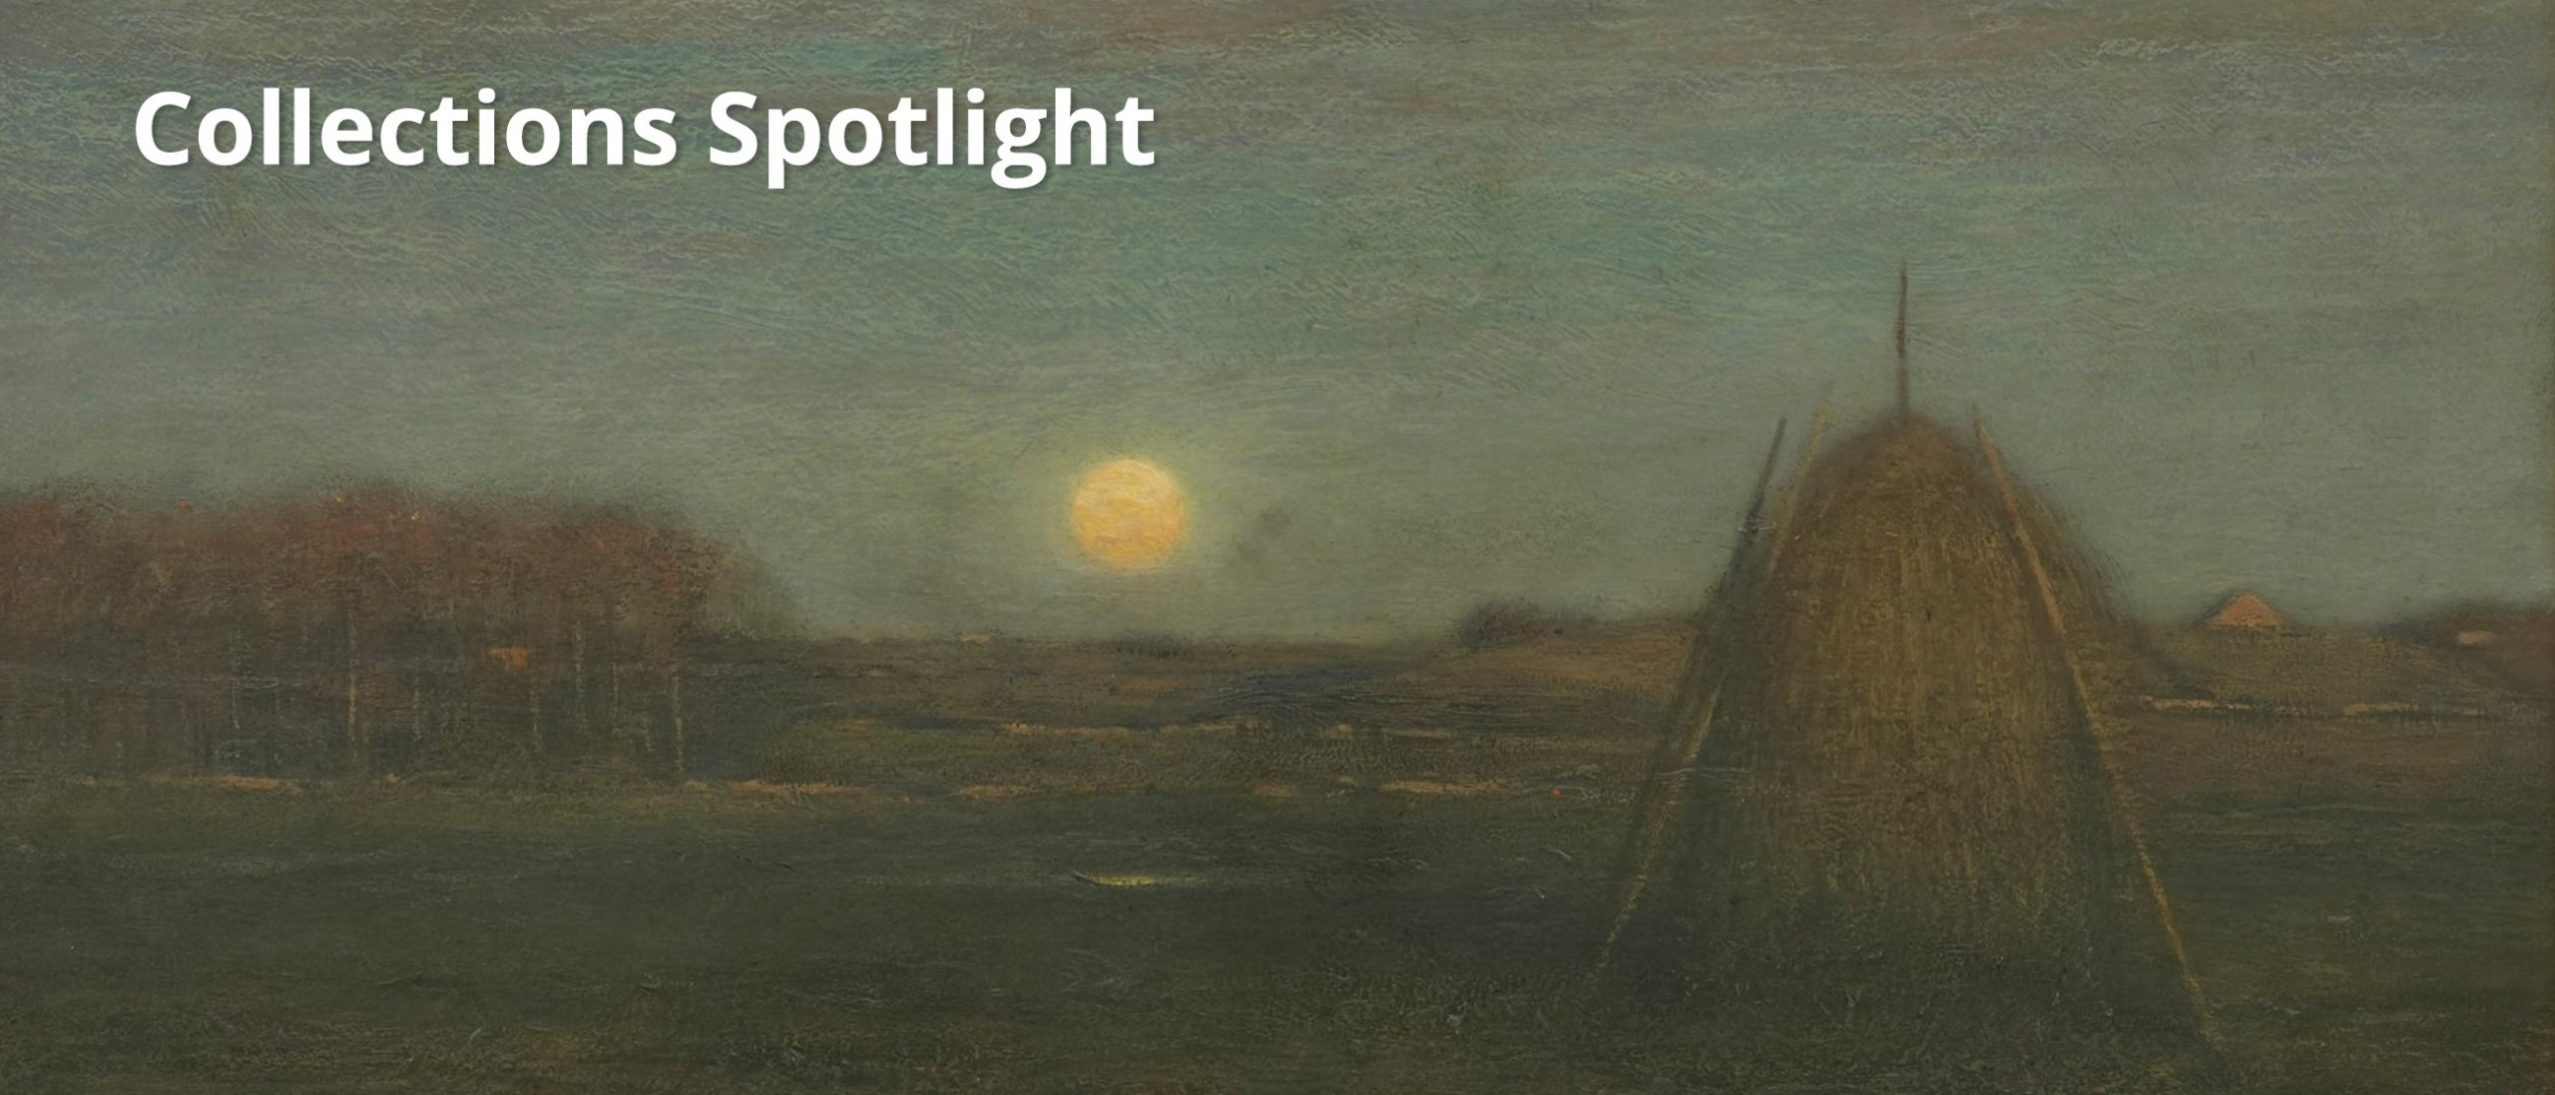 Collections Spotlight: The rising moon: Autumn showing a hazy night sky over haystacks in a field